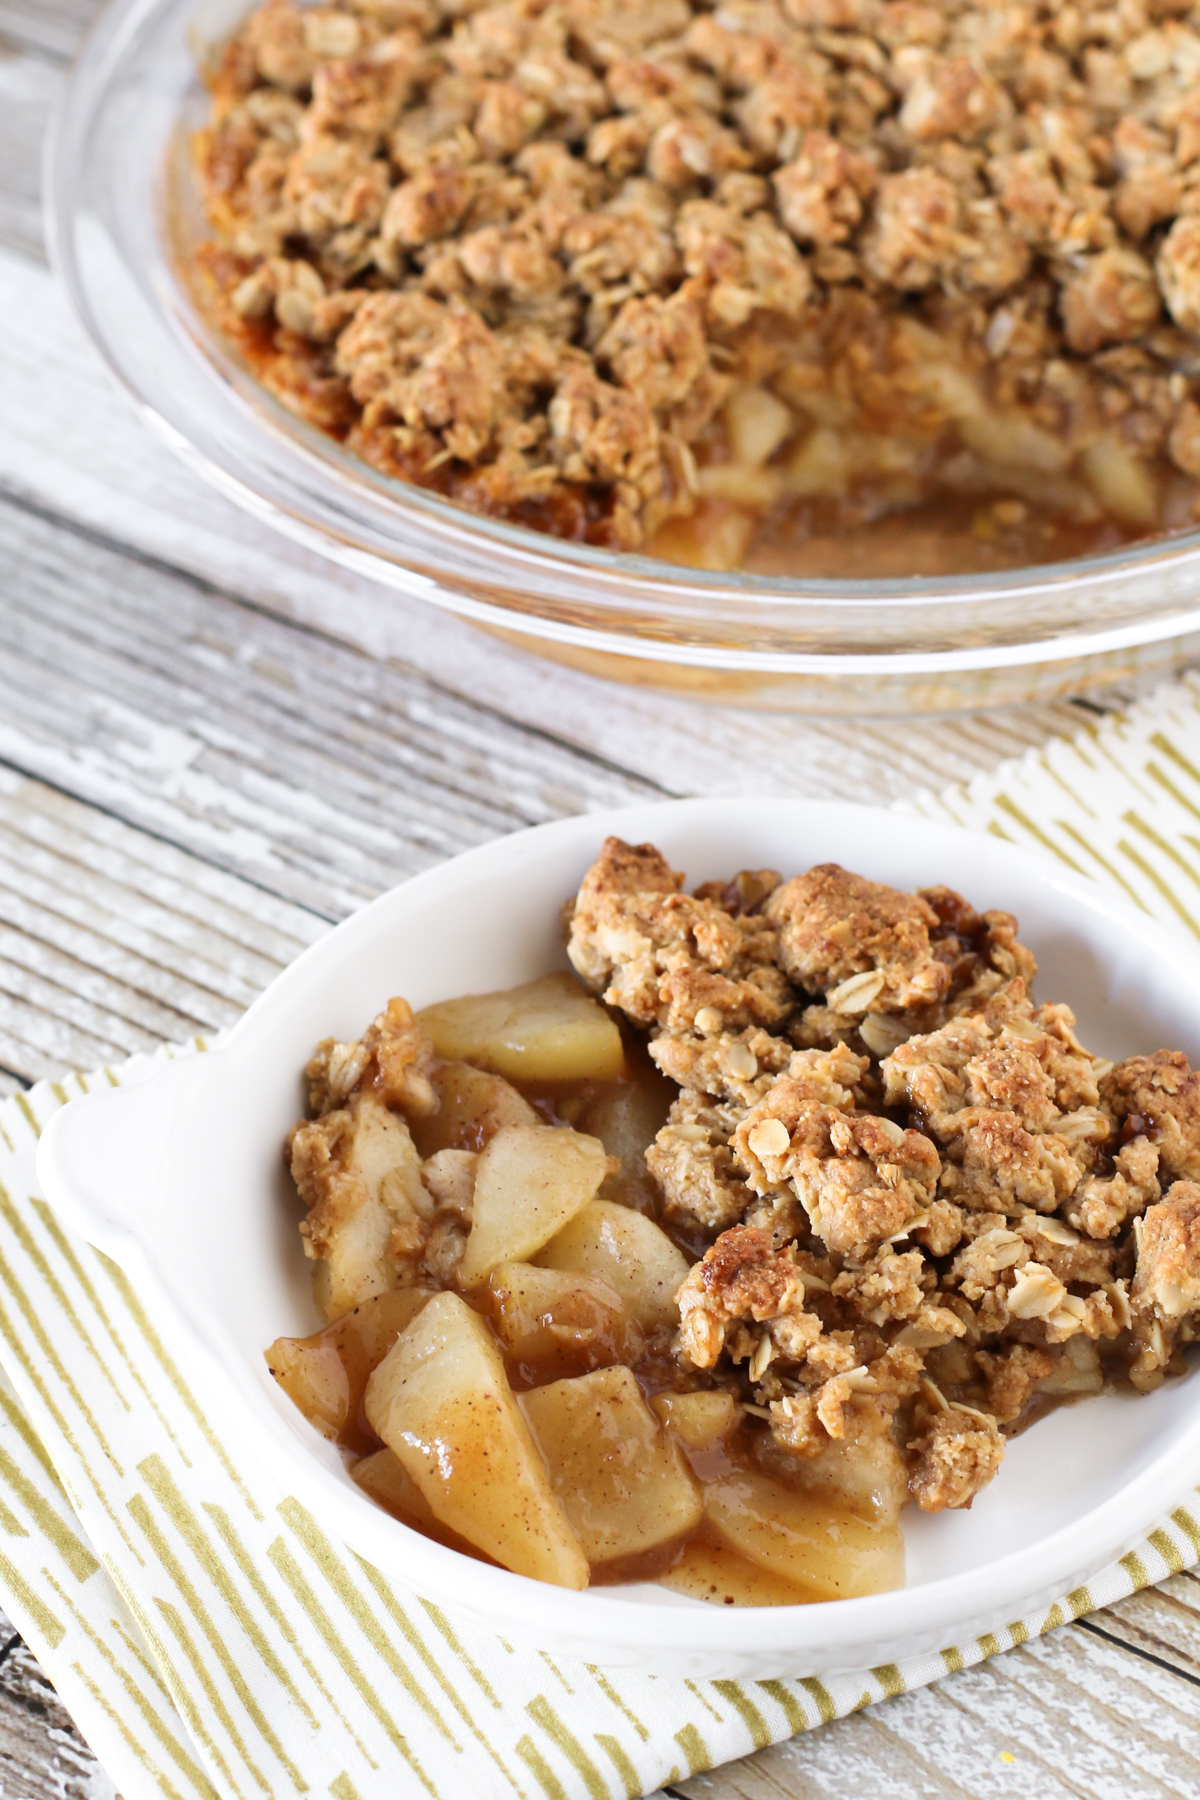 Gluten Free Vegan Chai Spiced Pear Crisp. Warm chai spices, sweet pears and a refined sugar free oat crumb topping. A lovely fall dessert!